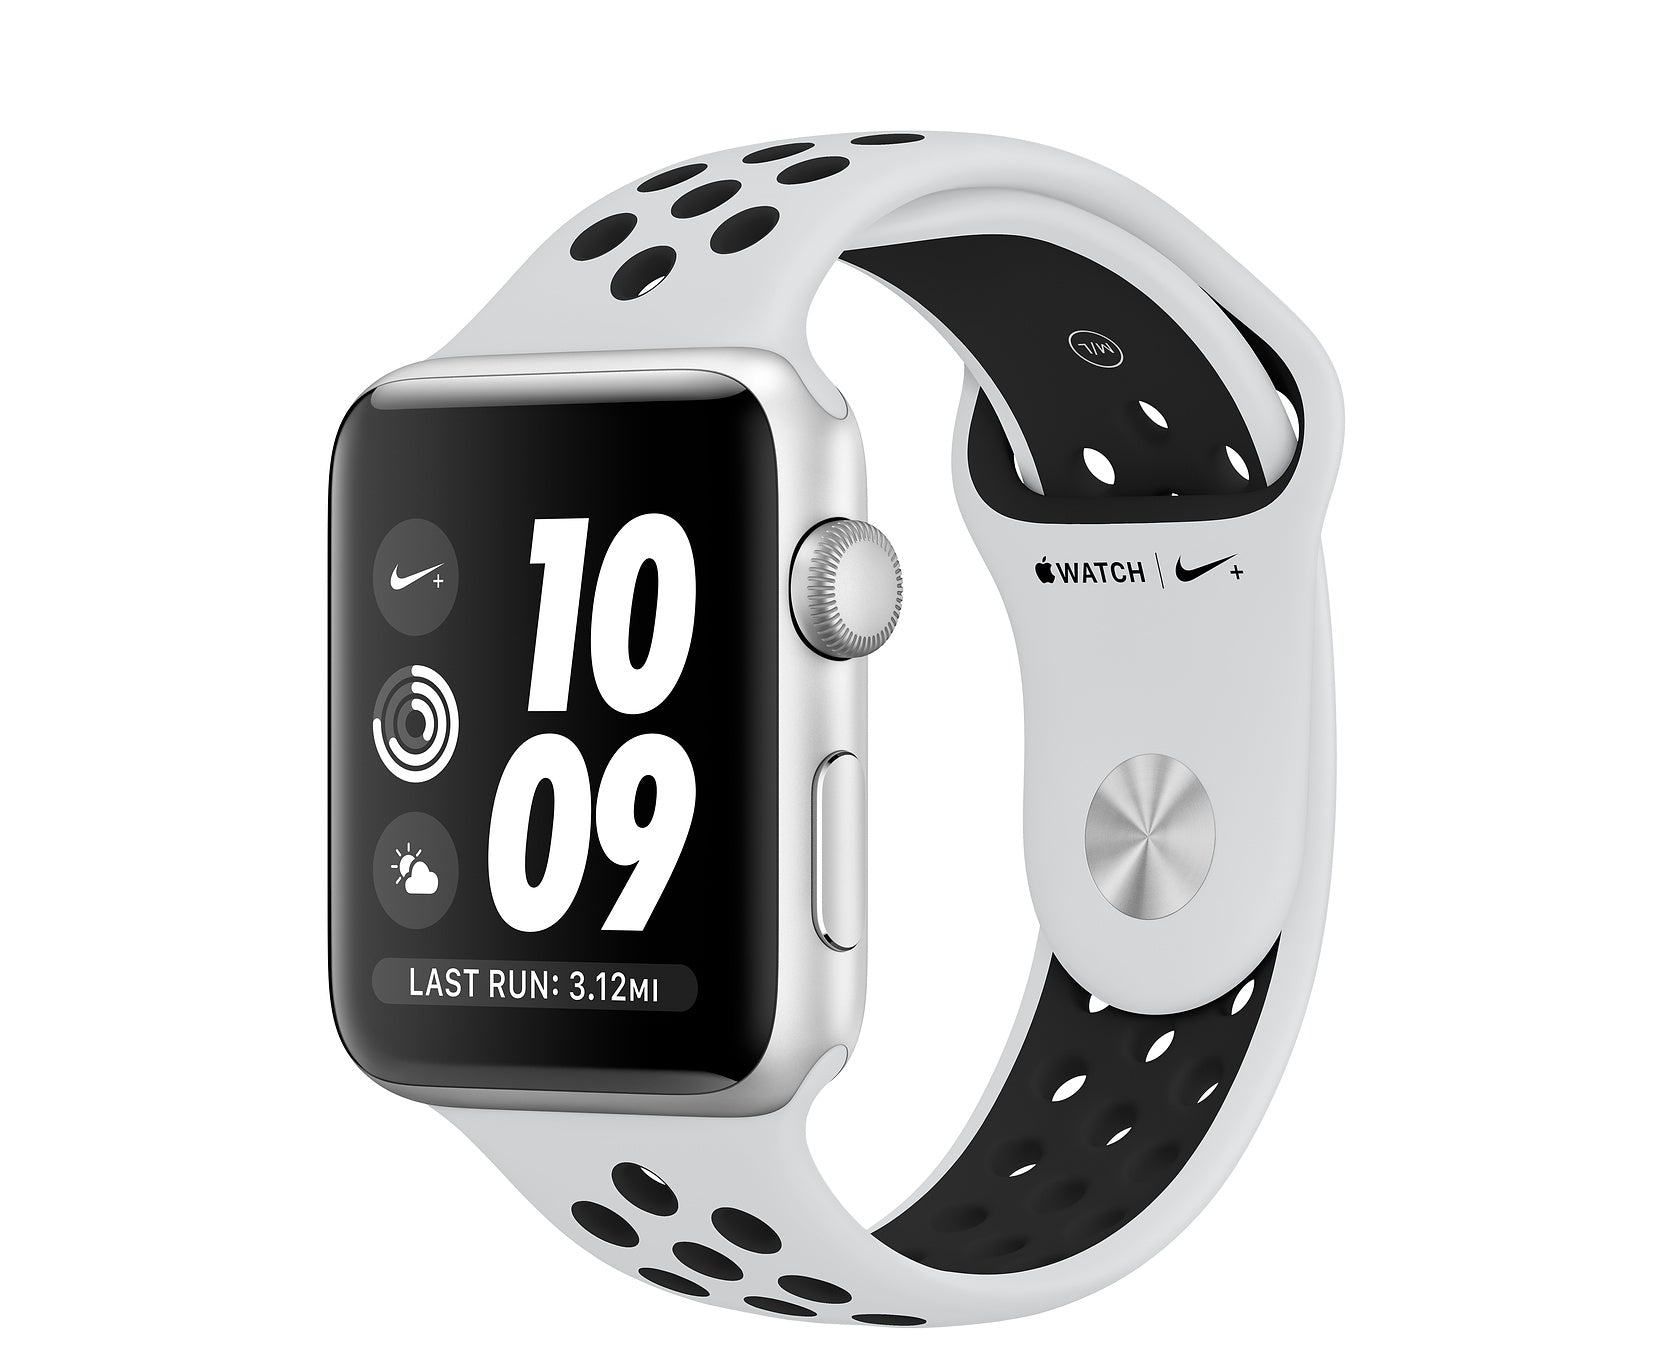 Mint+ Apple Watch Series 3 42mm with Nike Sports Band - Silver